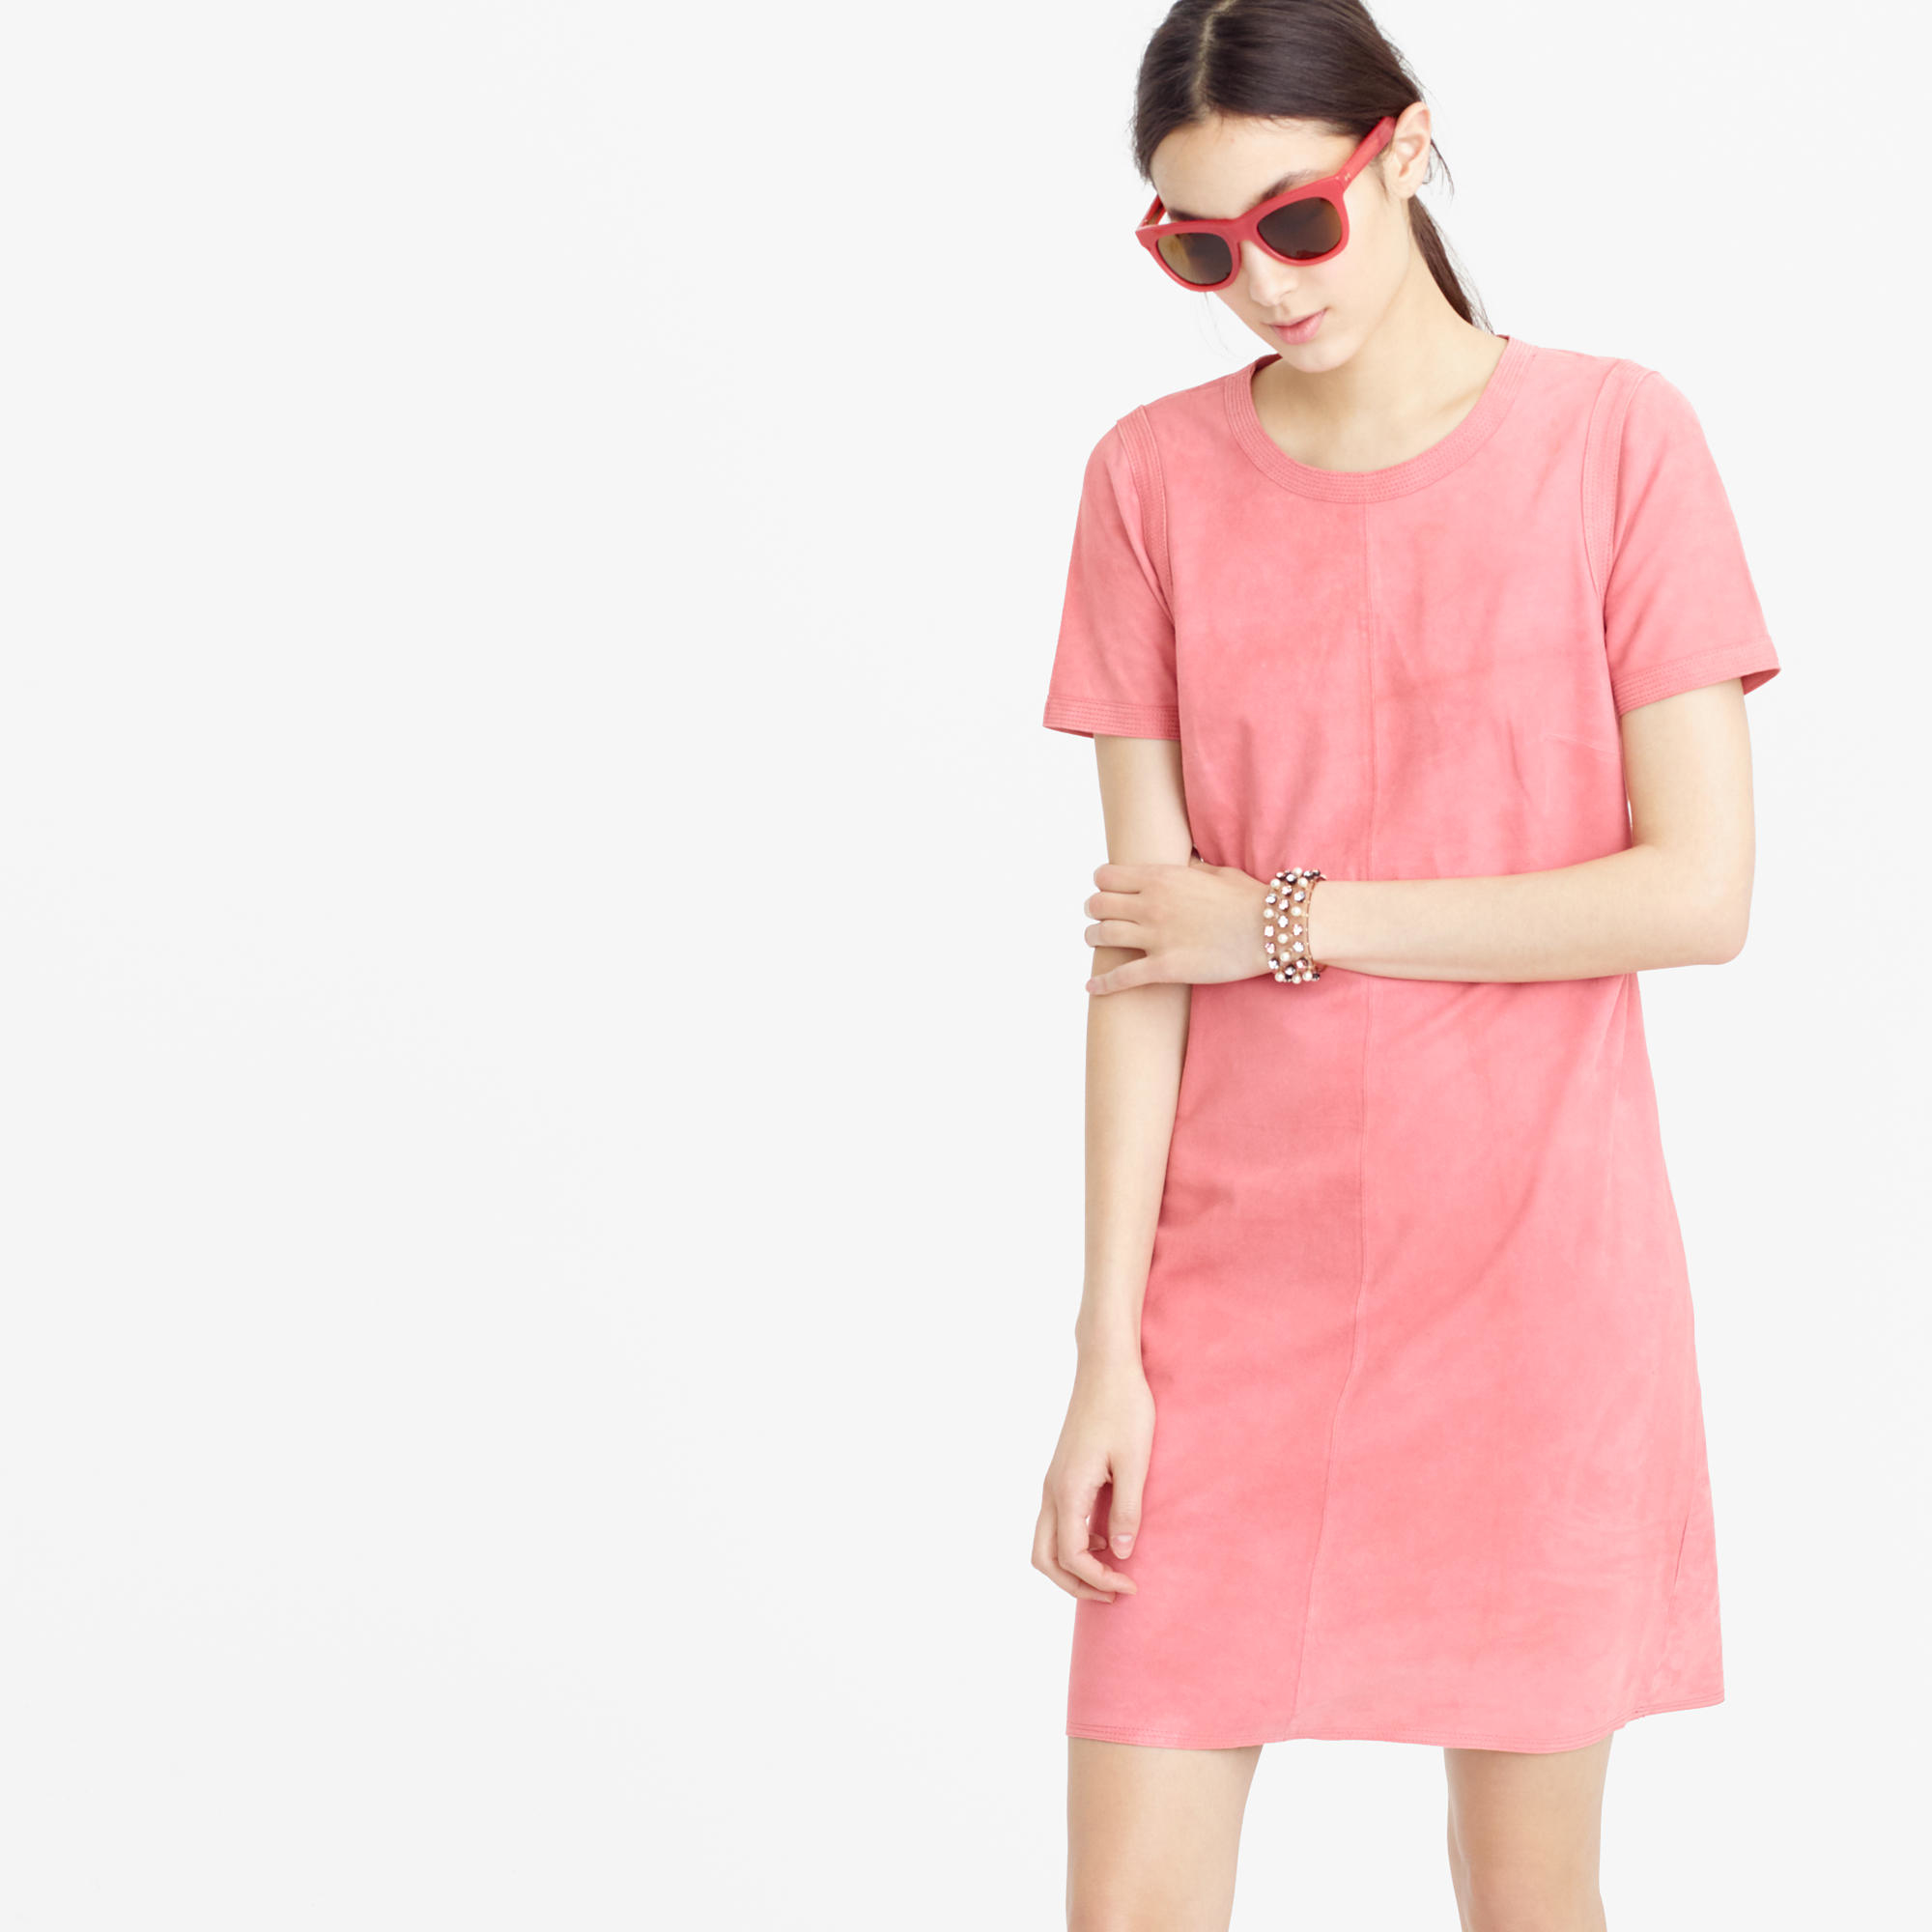 J crew collection lace dress